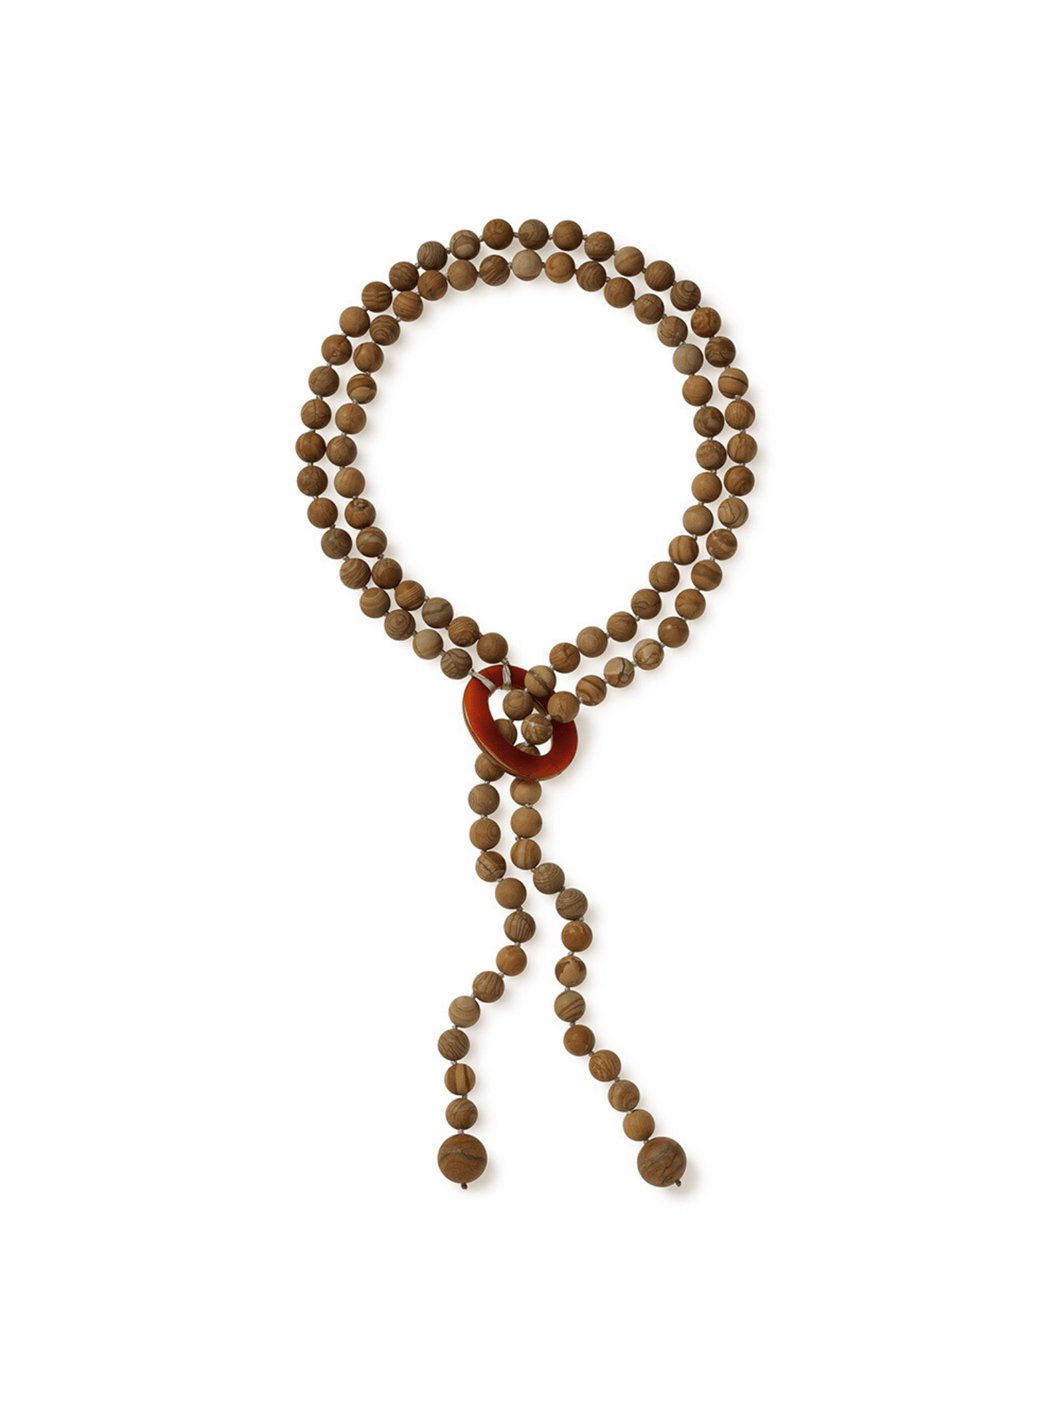 Matte Picture Jasper Necklace with Loop Design and Carnelian Accent